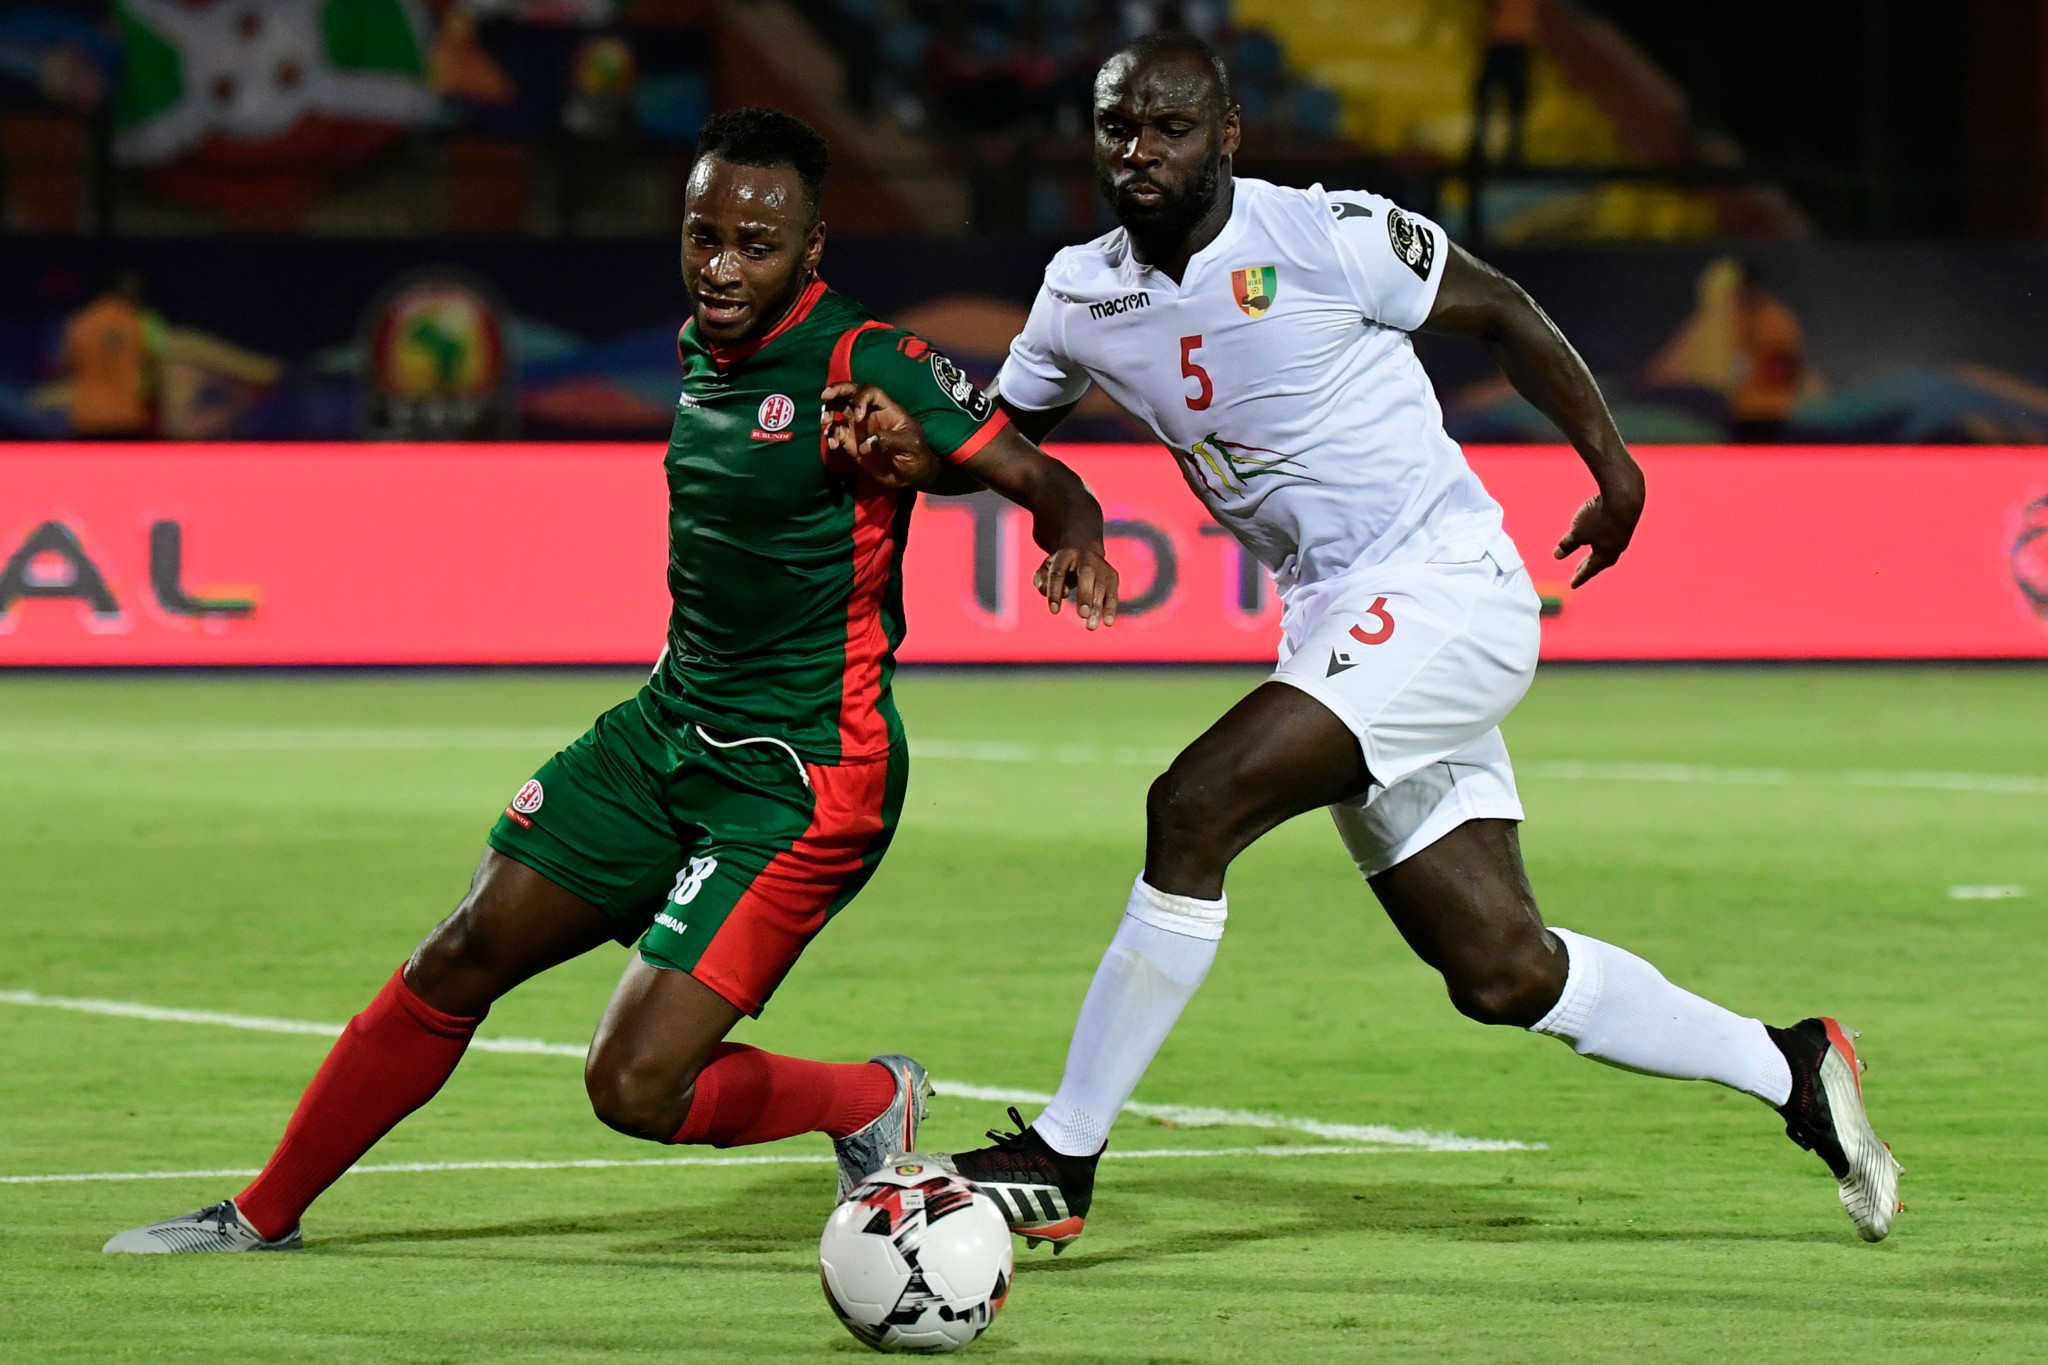 Burundi lost all three of their matches at their first Africa Cup of Nations ©Getty Images